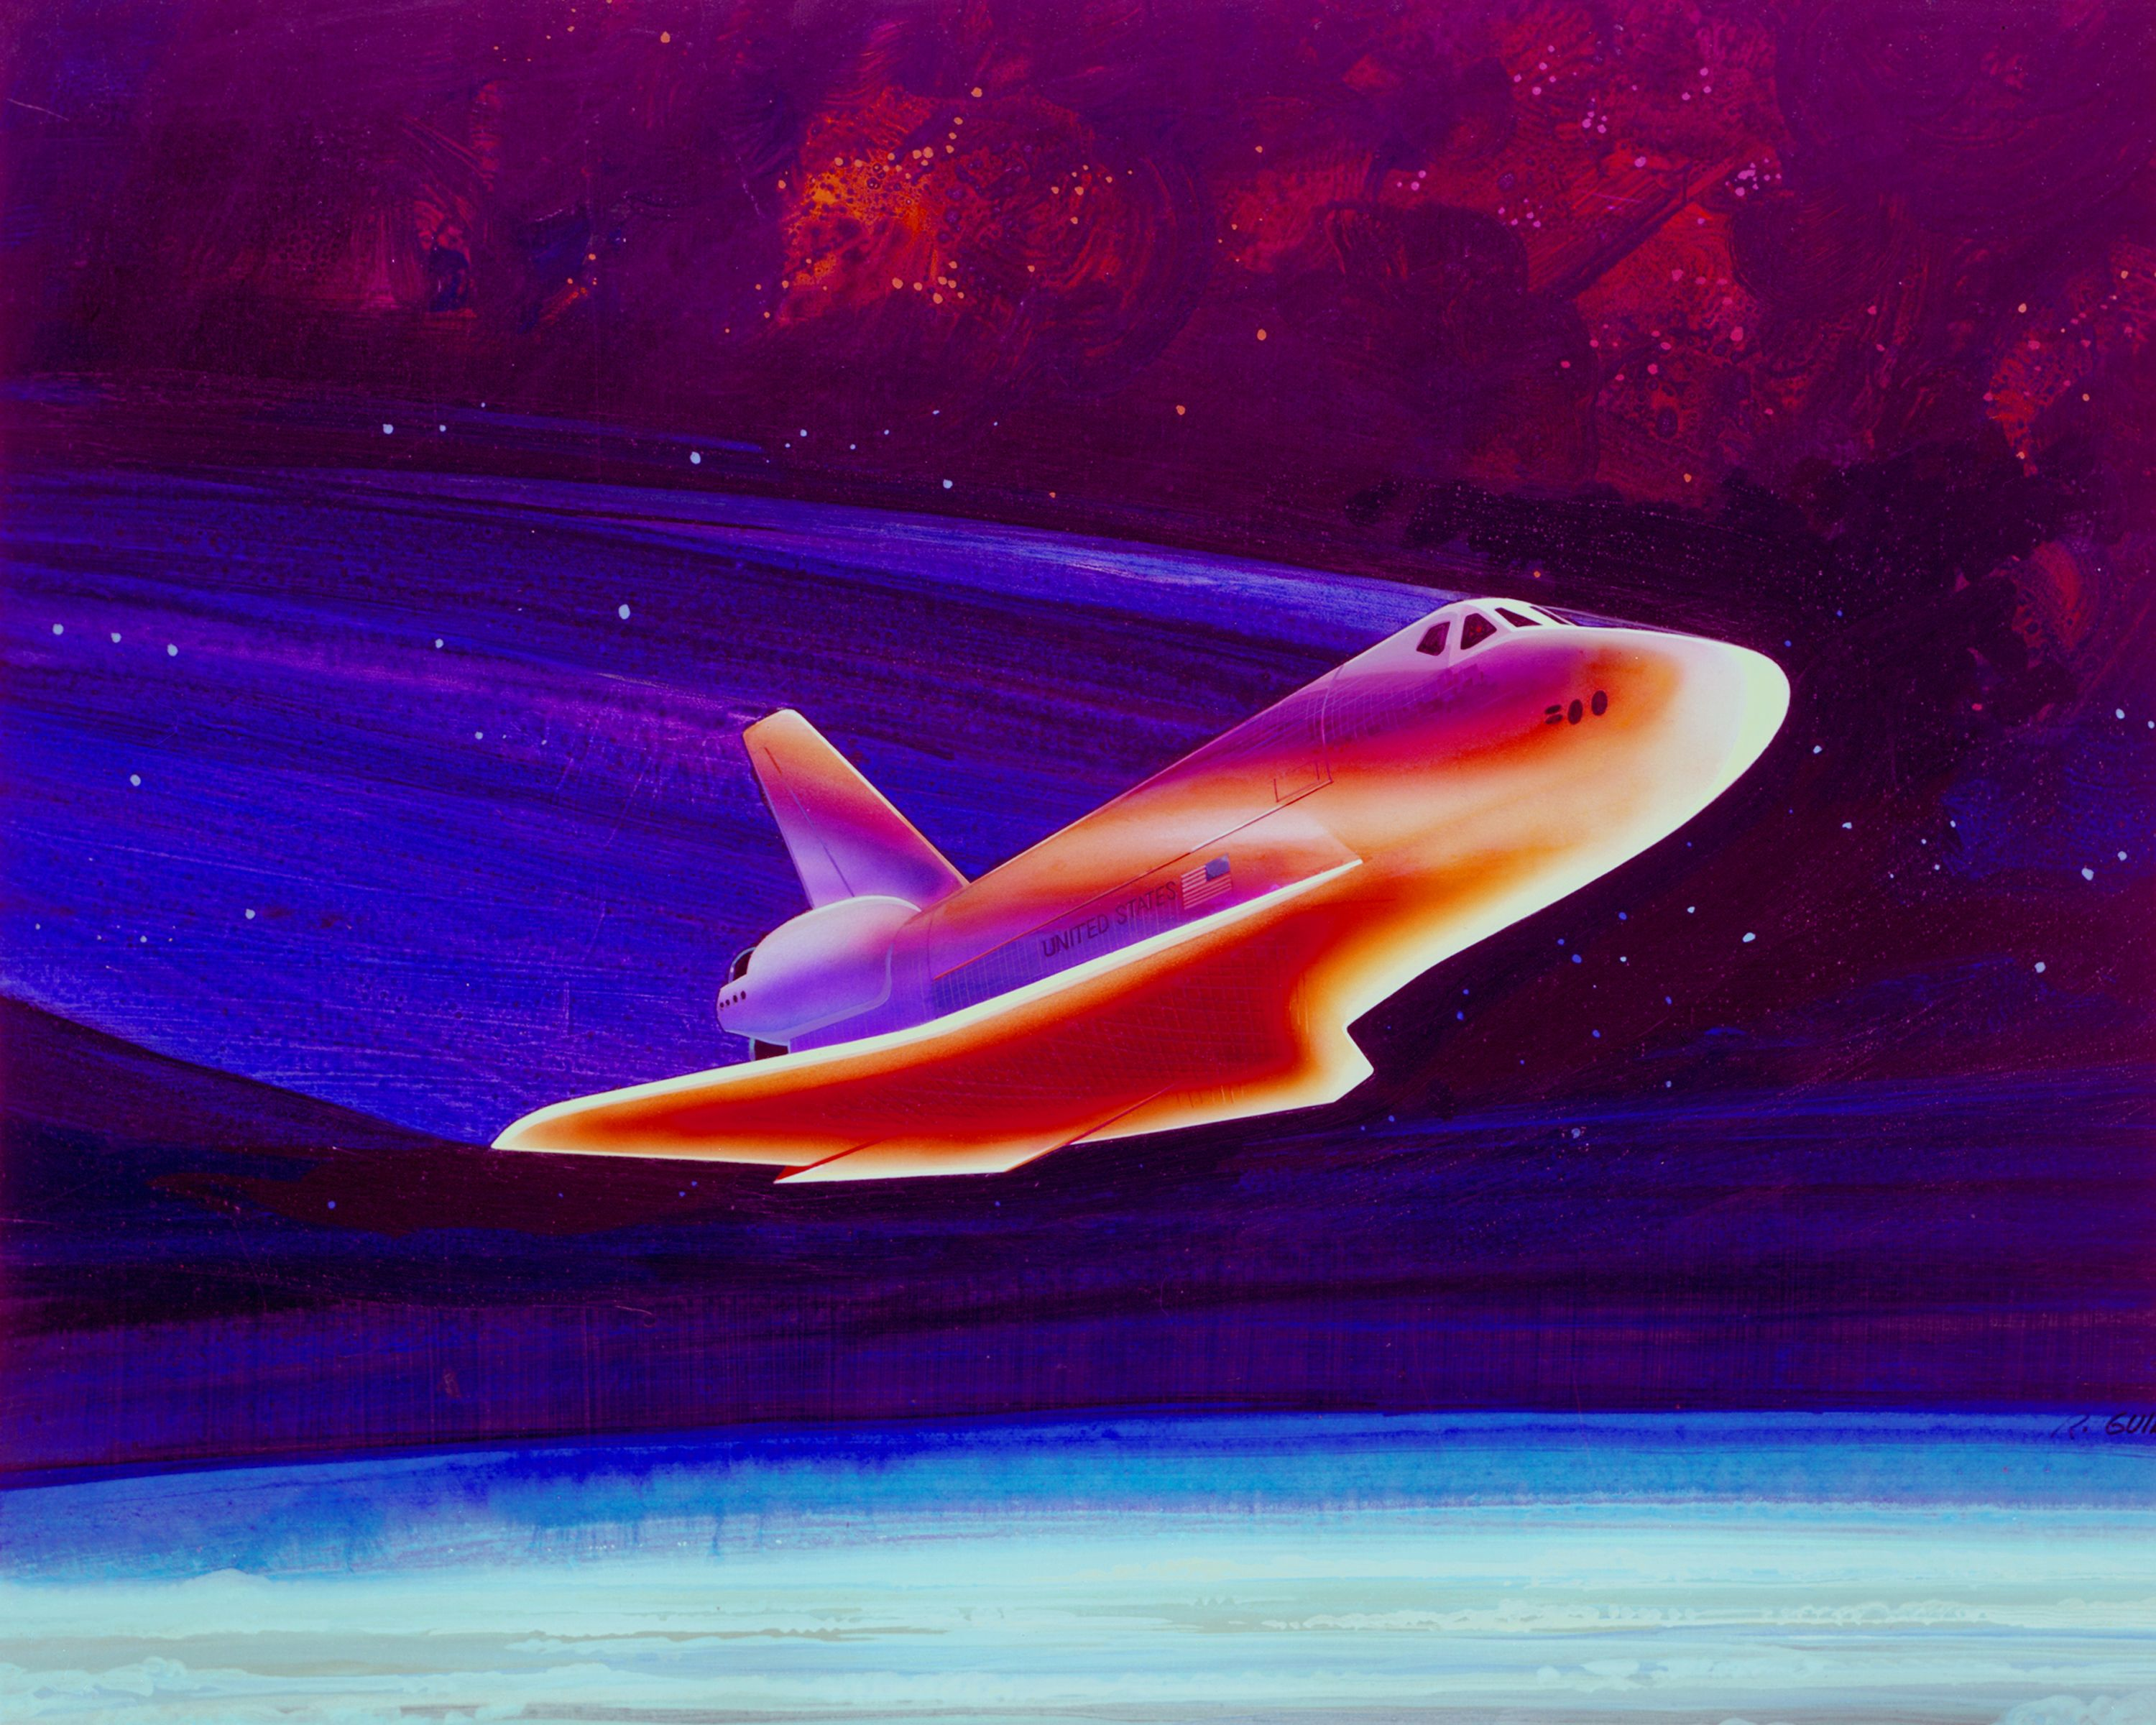 space shuttle reentry temperature - photo #24